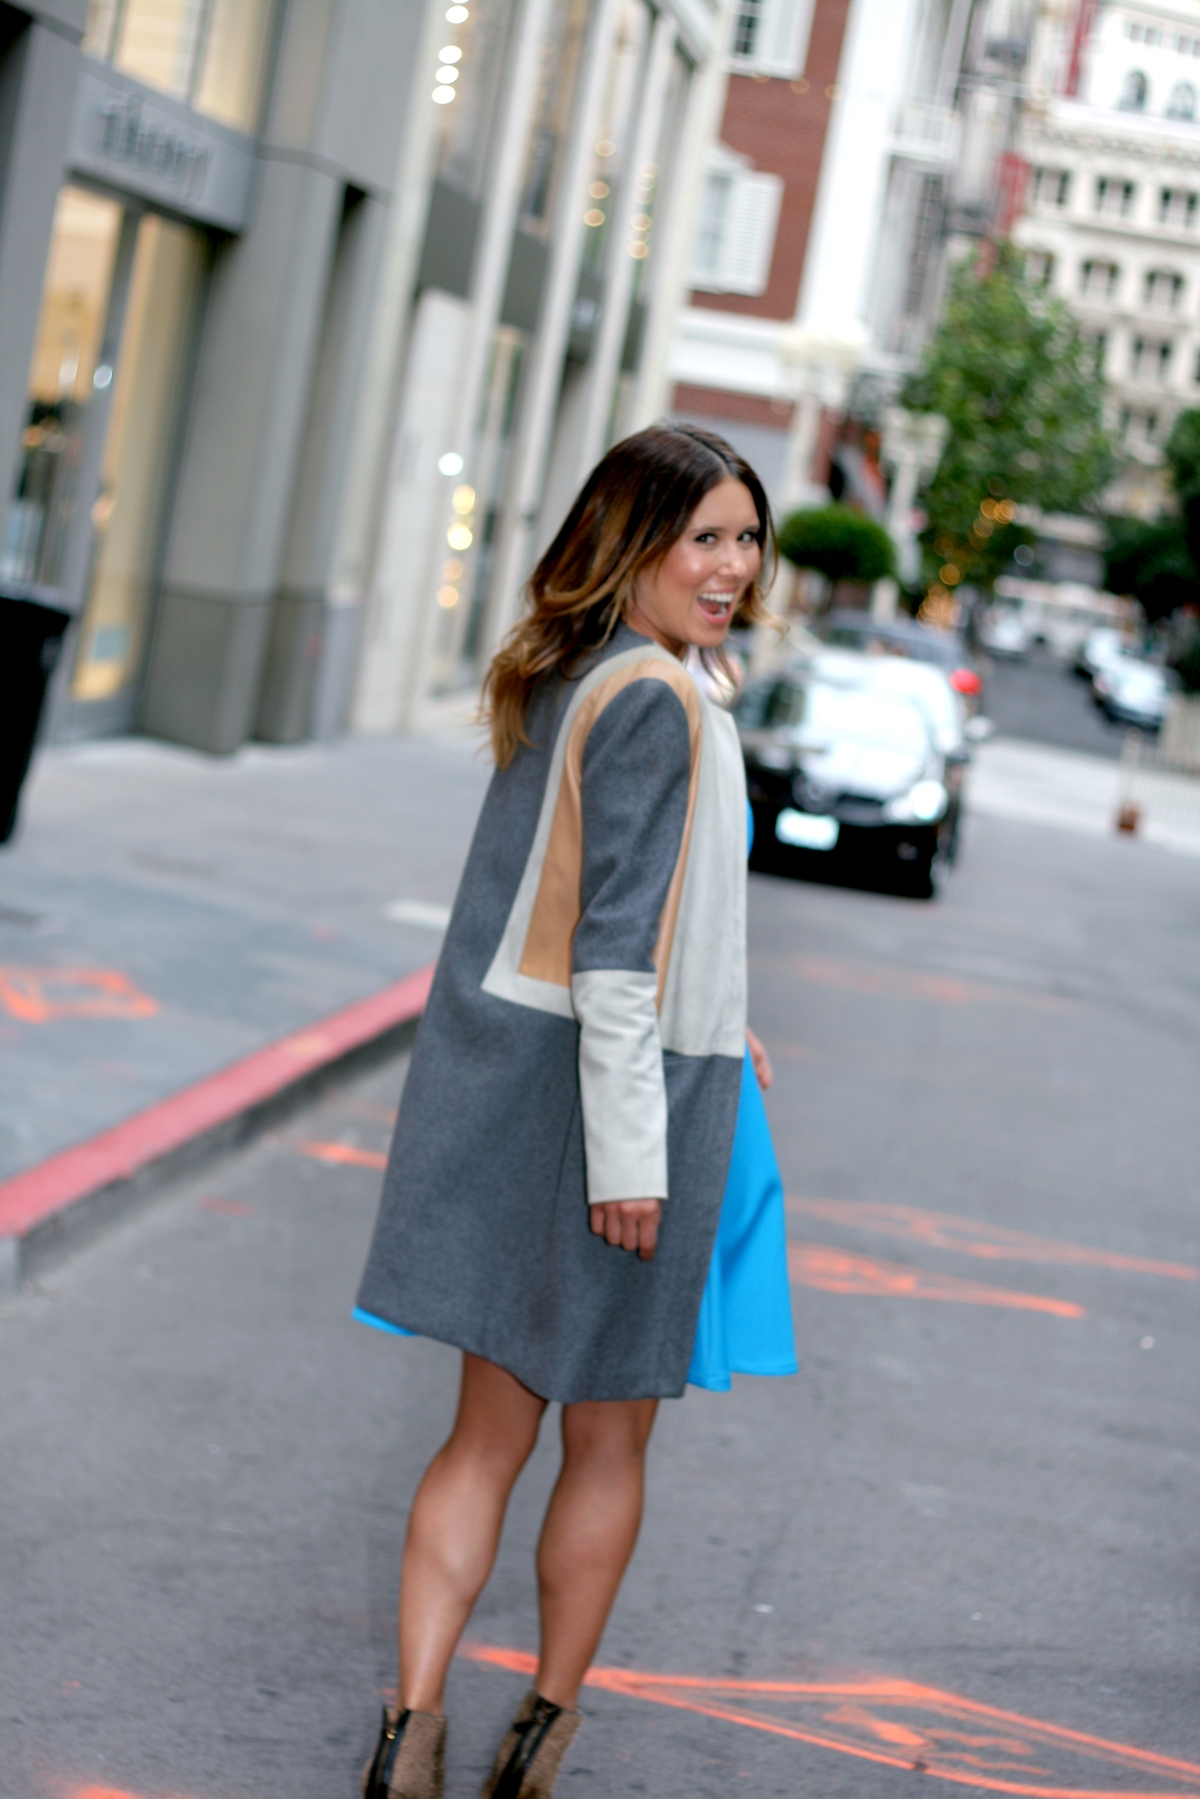 Shannon Snow, Fashion Designer, San Francisco Fashion, San Francisco Designer, Dress Designer, Workwear, Fashion Blogger, Fashion Designer Feature, San Francisco Style, Maiden Lane, Twitter Blue, Street Style,